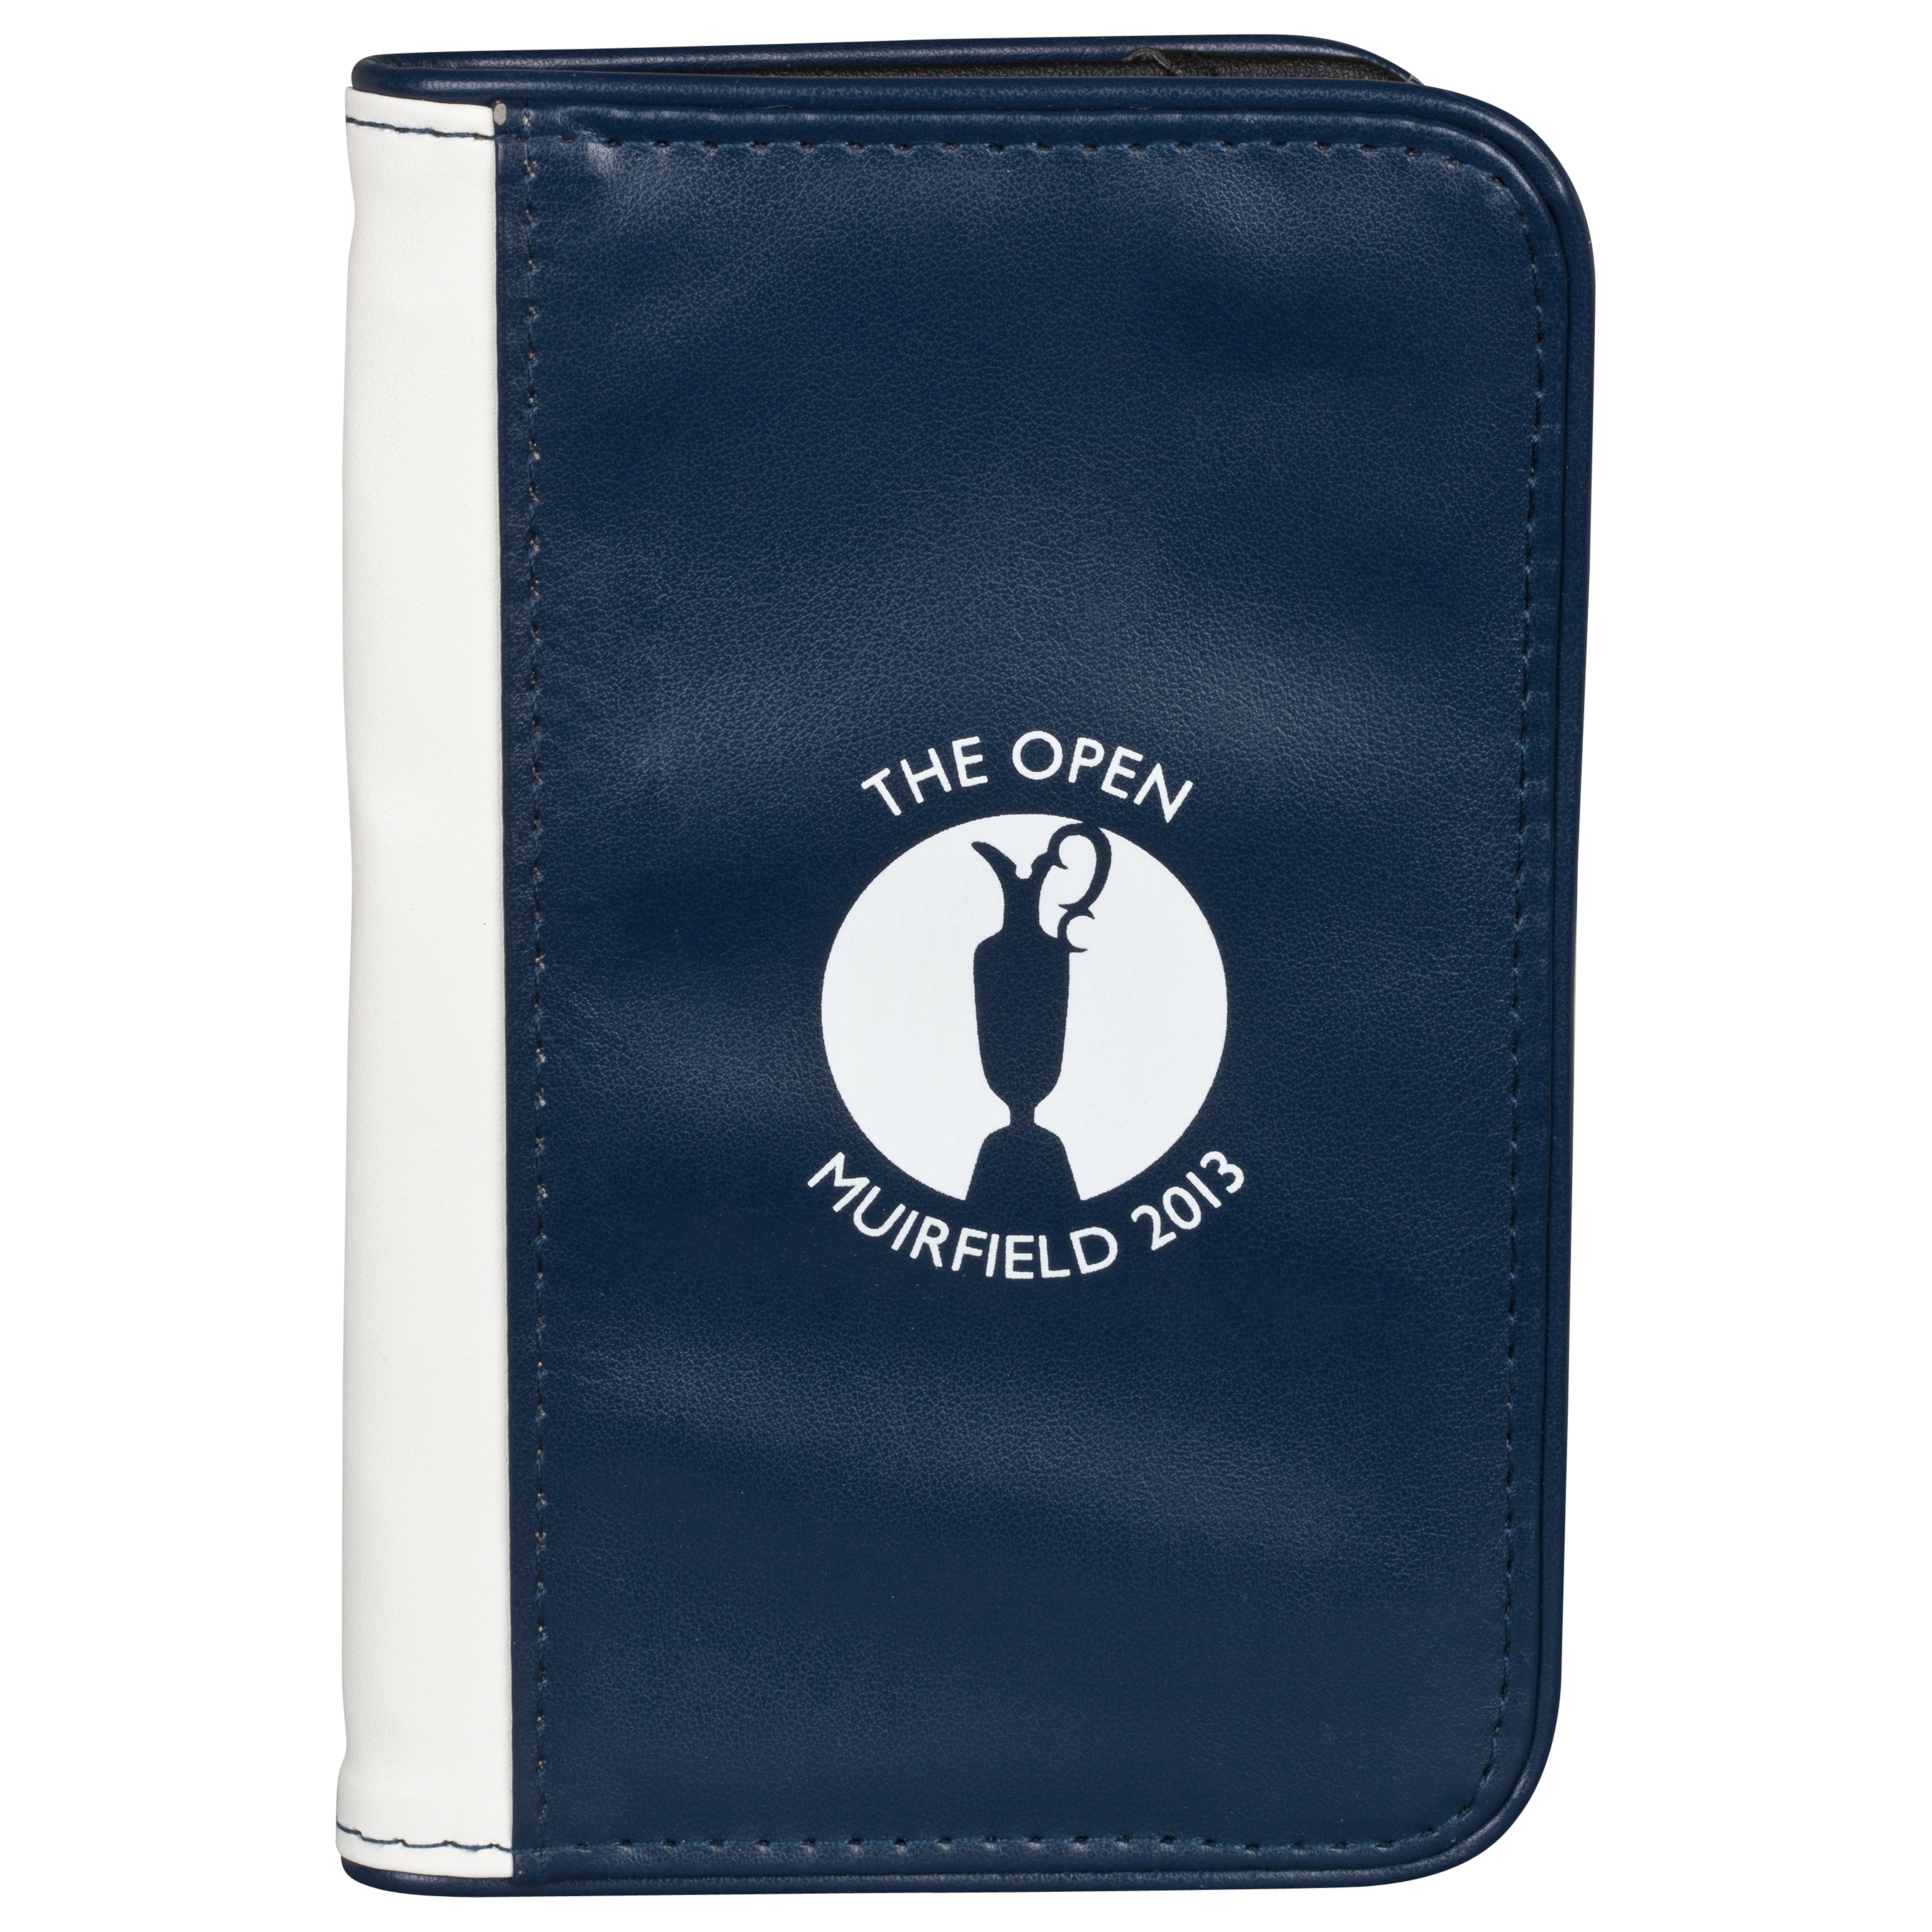 The Open Championship 2013 Muirfield Scorecard Holder Blue